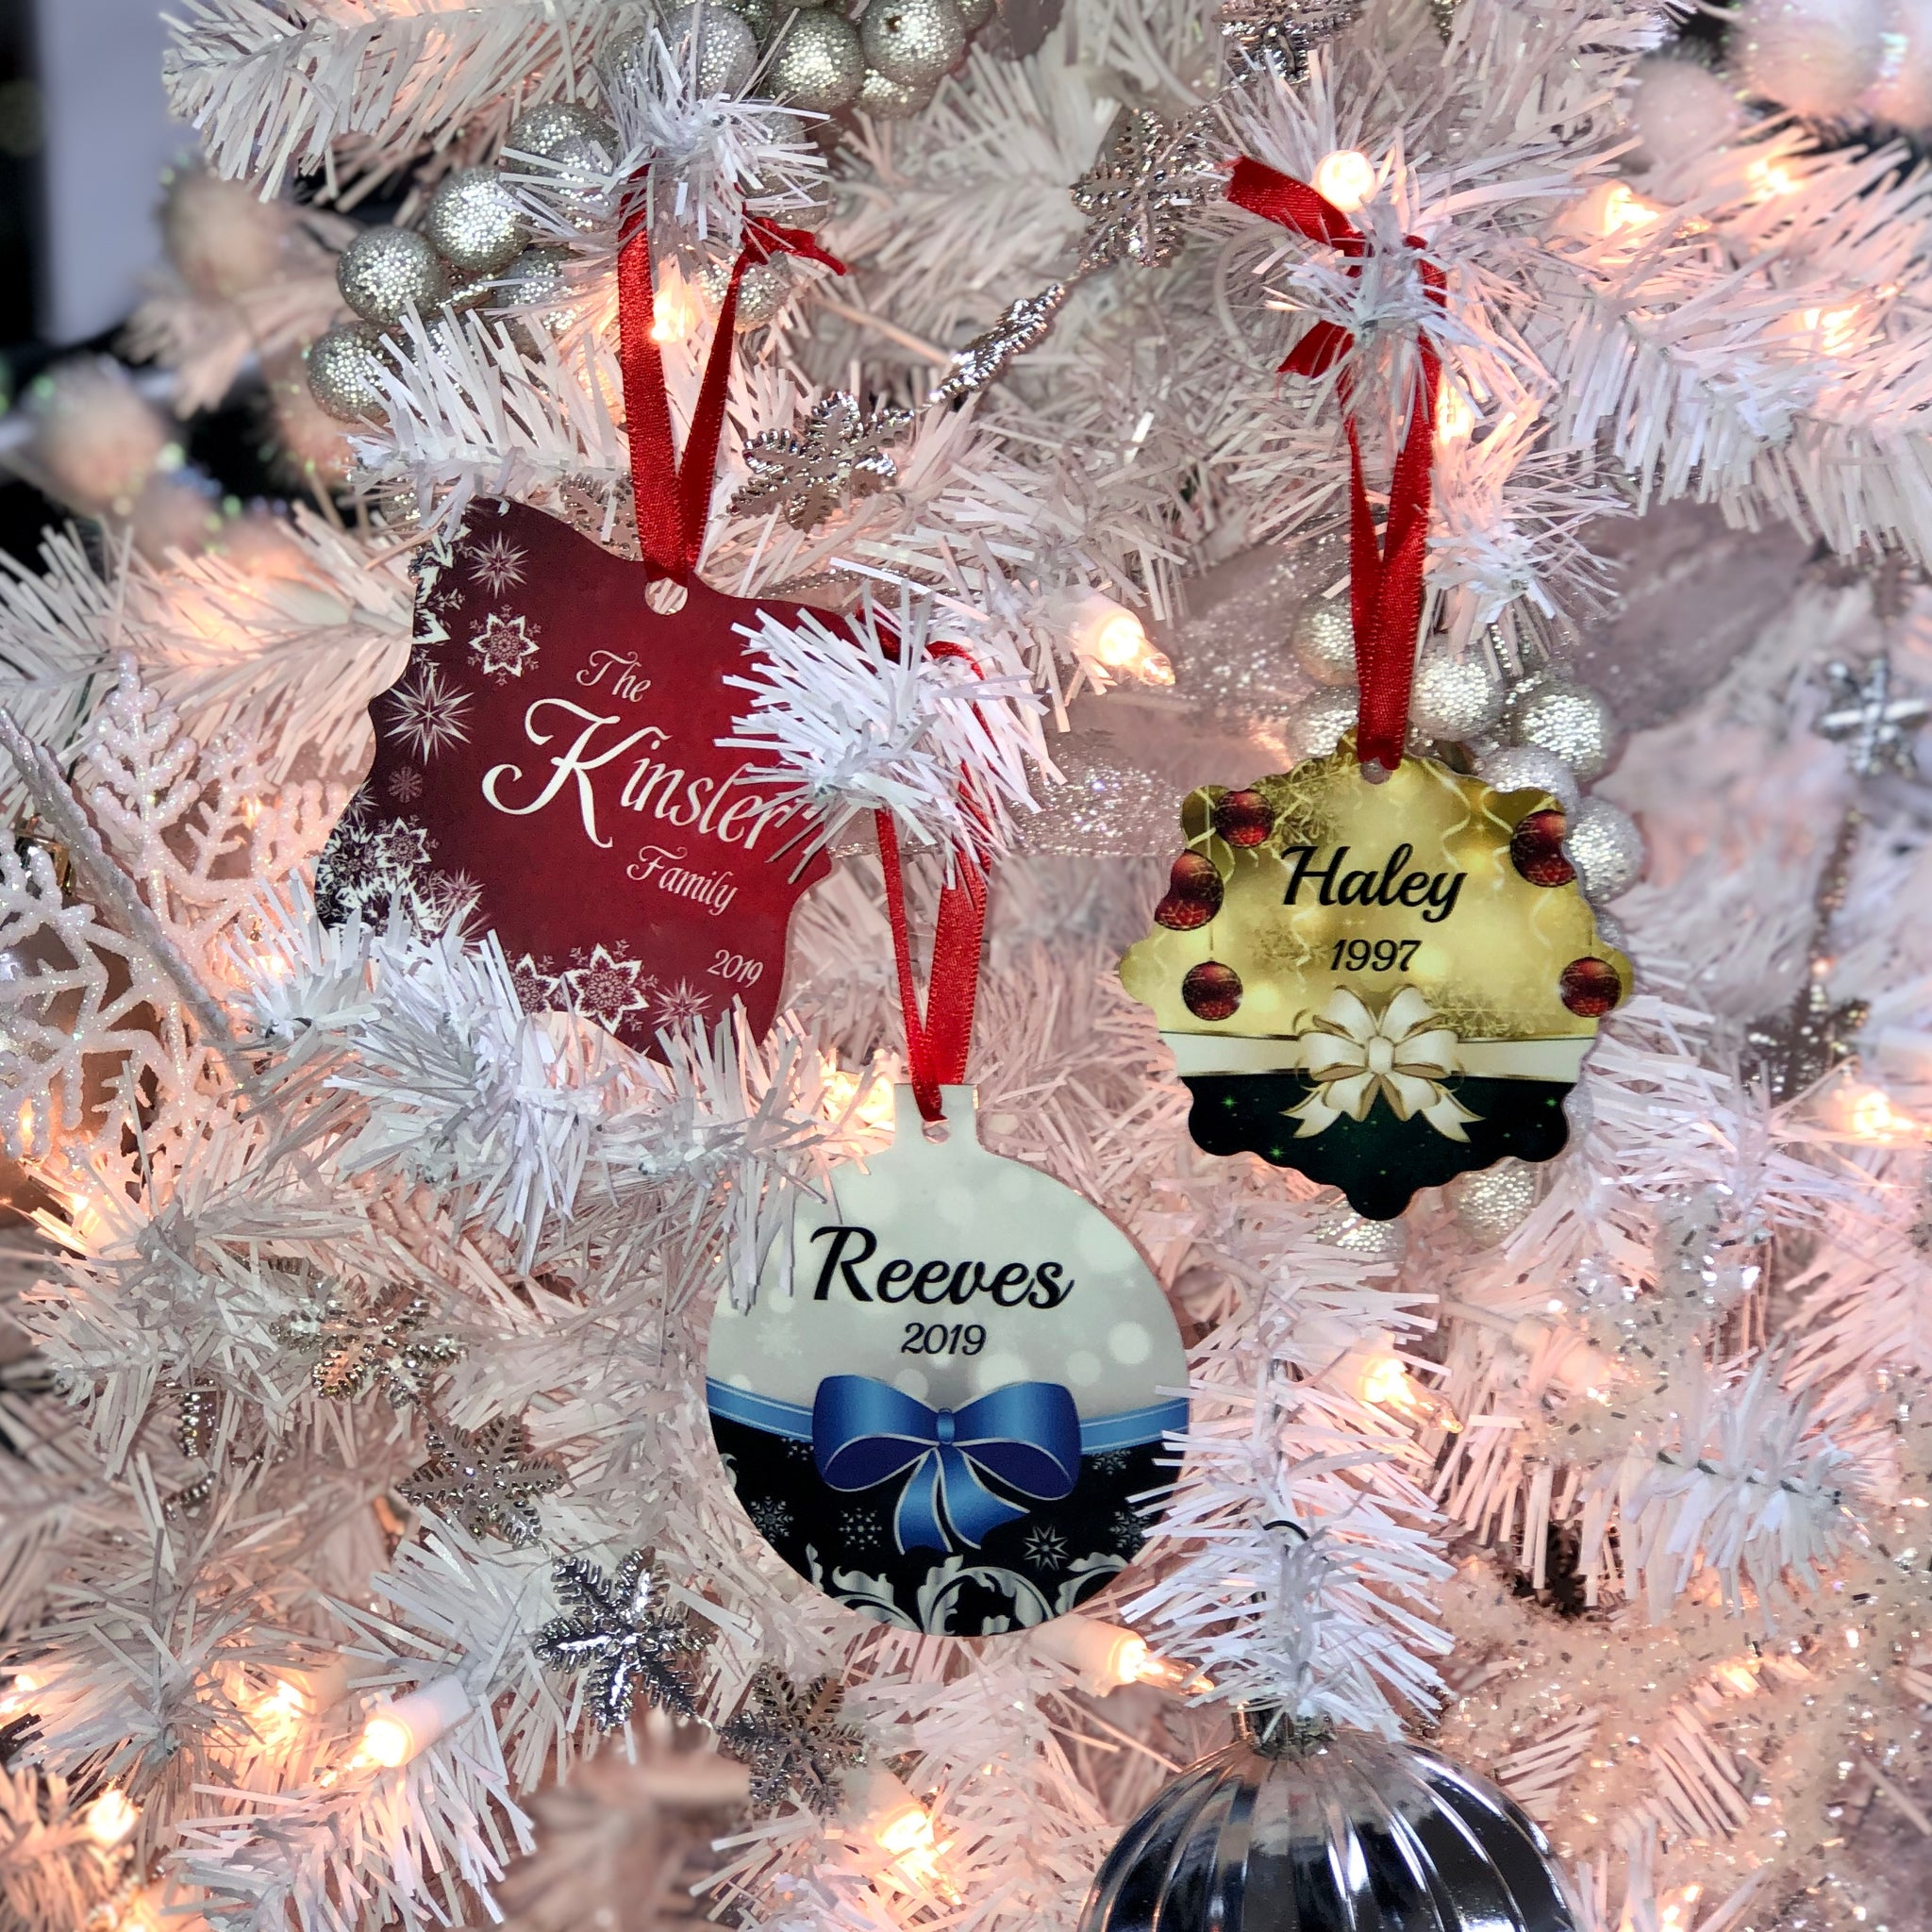 White Christmas tree holding different shaped ornaments with different colors and designs on each.